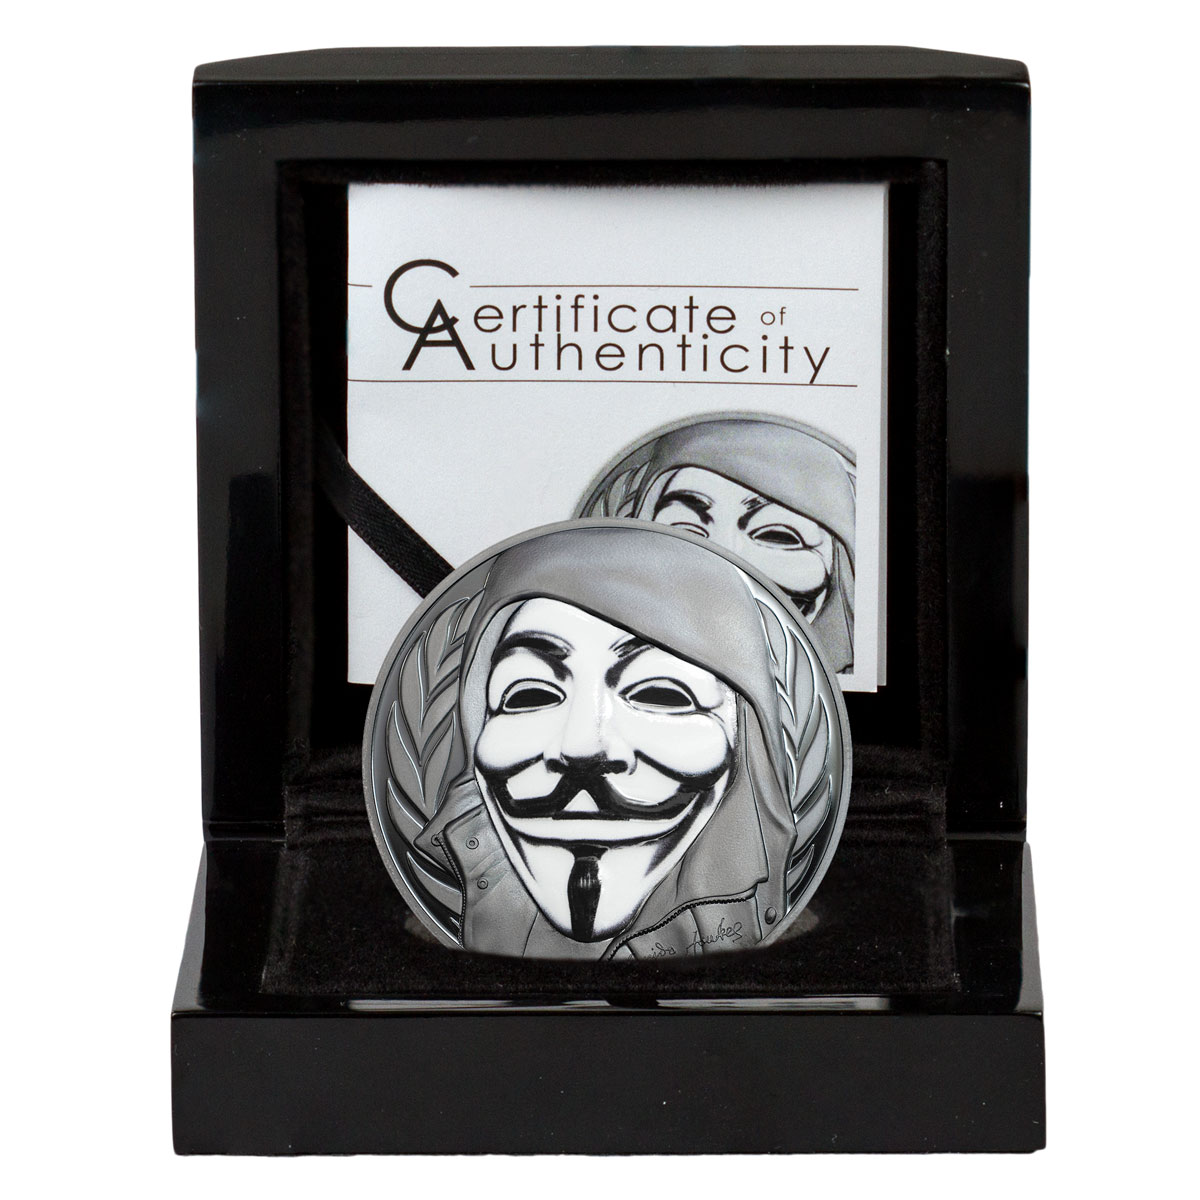 2016 Cook Islands Guy Fawkes Mask 1 oz Silver Enameled Proof $5 Coin GEM Proof (OGP)